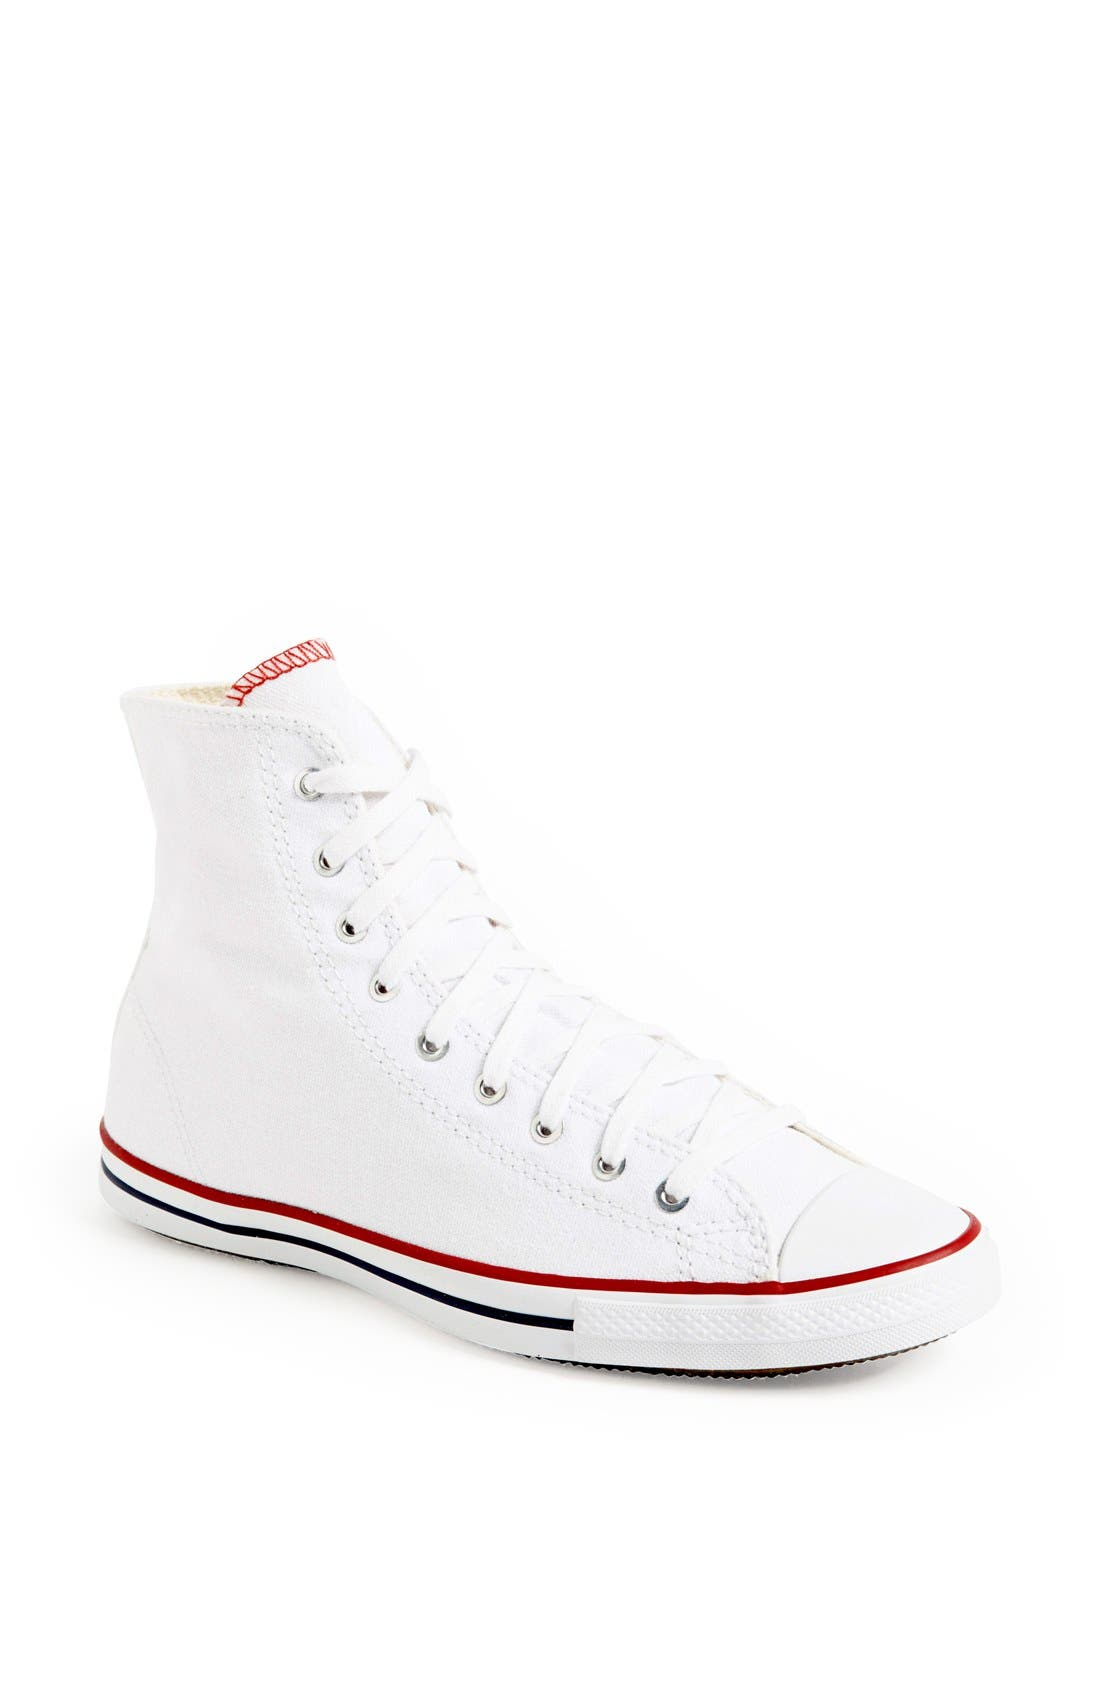 Alternate Image 1 Selected - Converse Chuck Taylor® All Star® 'Fancy' High Top Sneaker